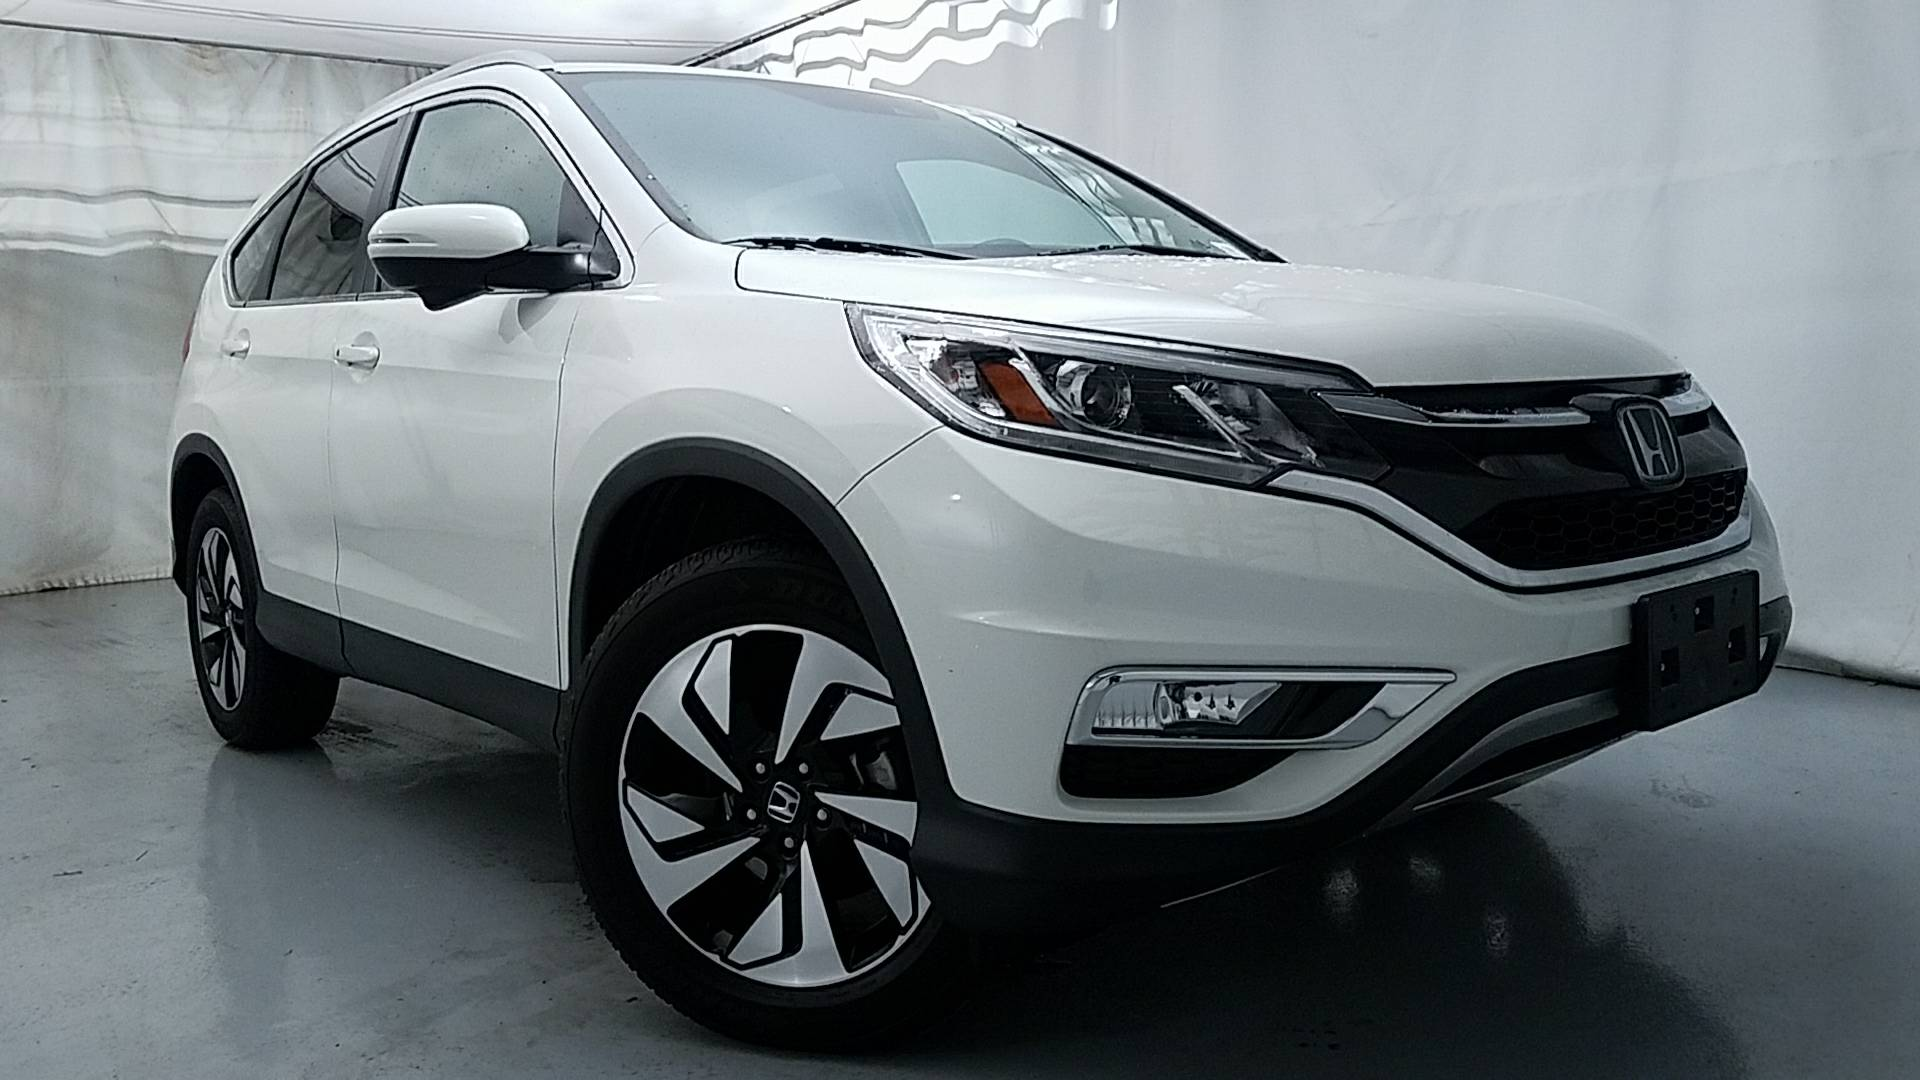 5J6RM3H98GL016675.dp.1.20180330090354 Take A Look About Murano Vs Crv with Fascinating Pictures Cars Review